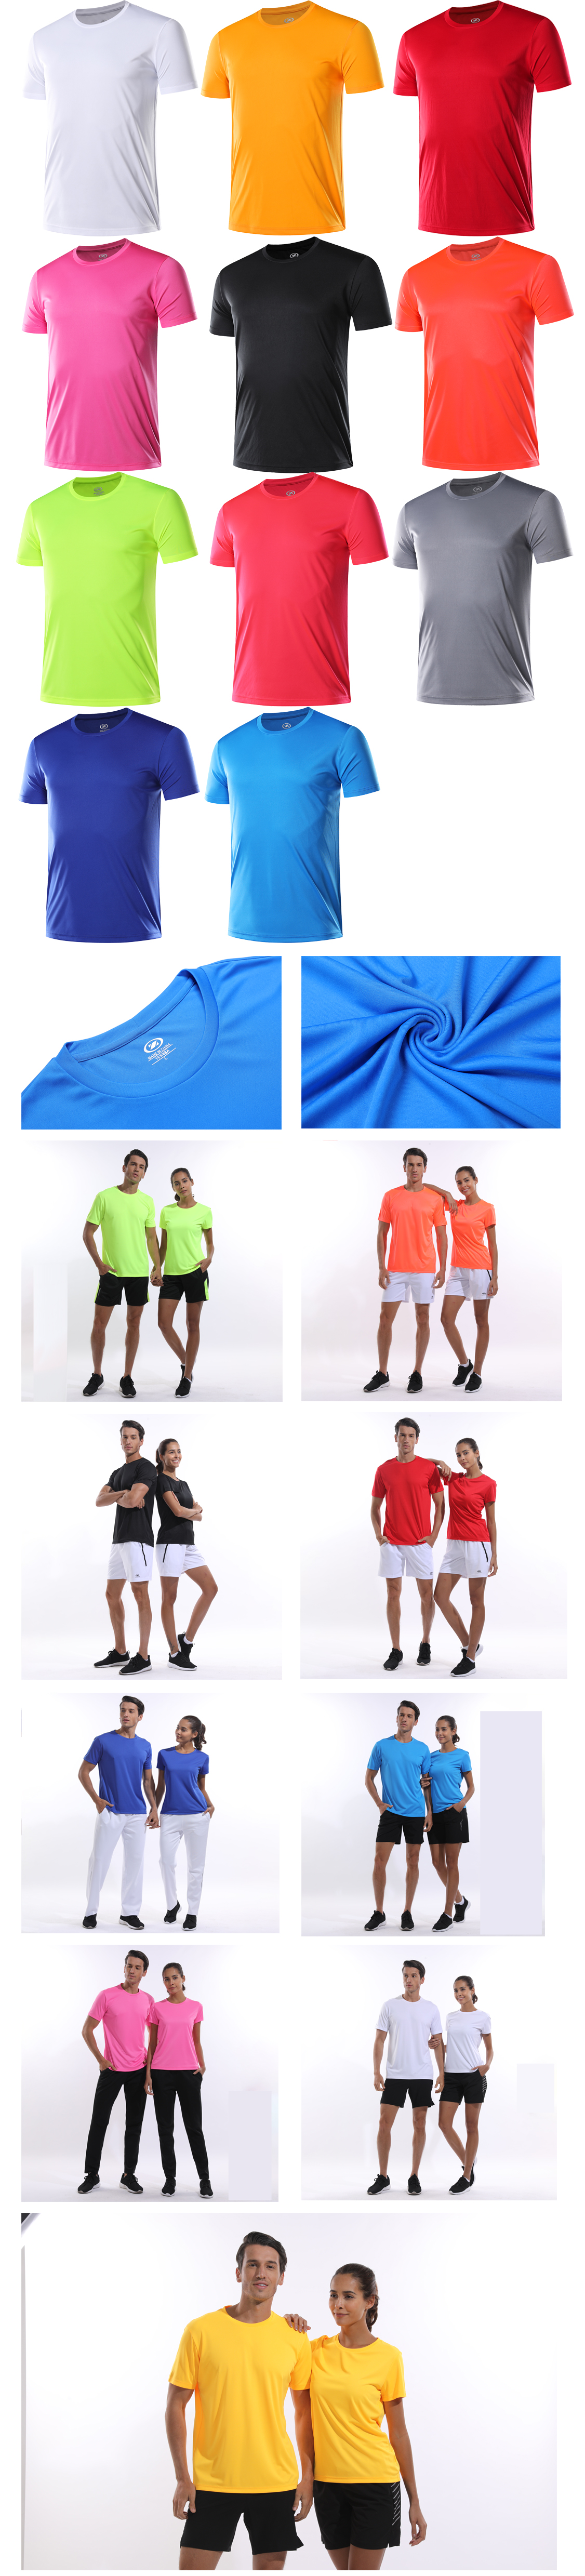 Hommes t-shirt gym plaine sport tennis t-shirts respirants à séchage course chemises